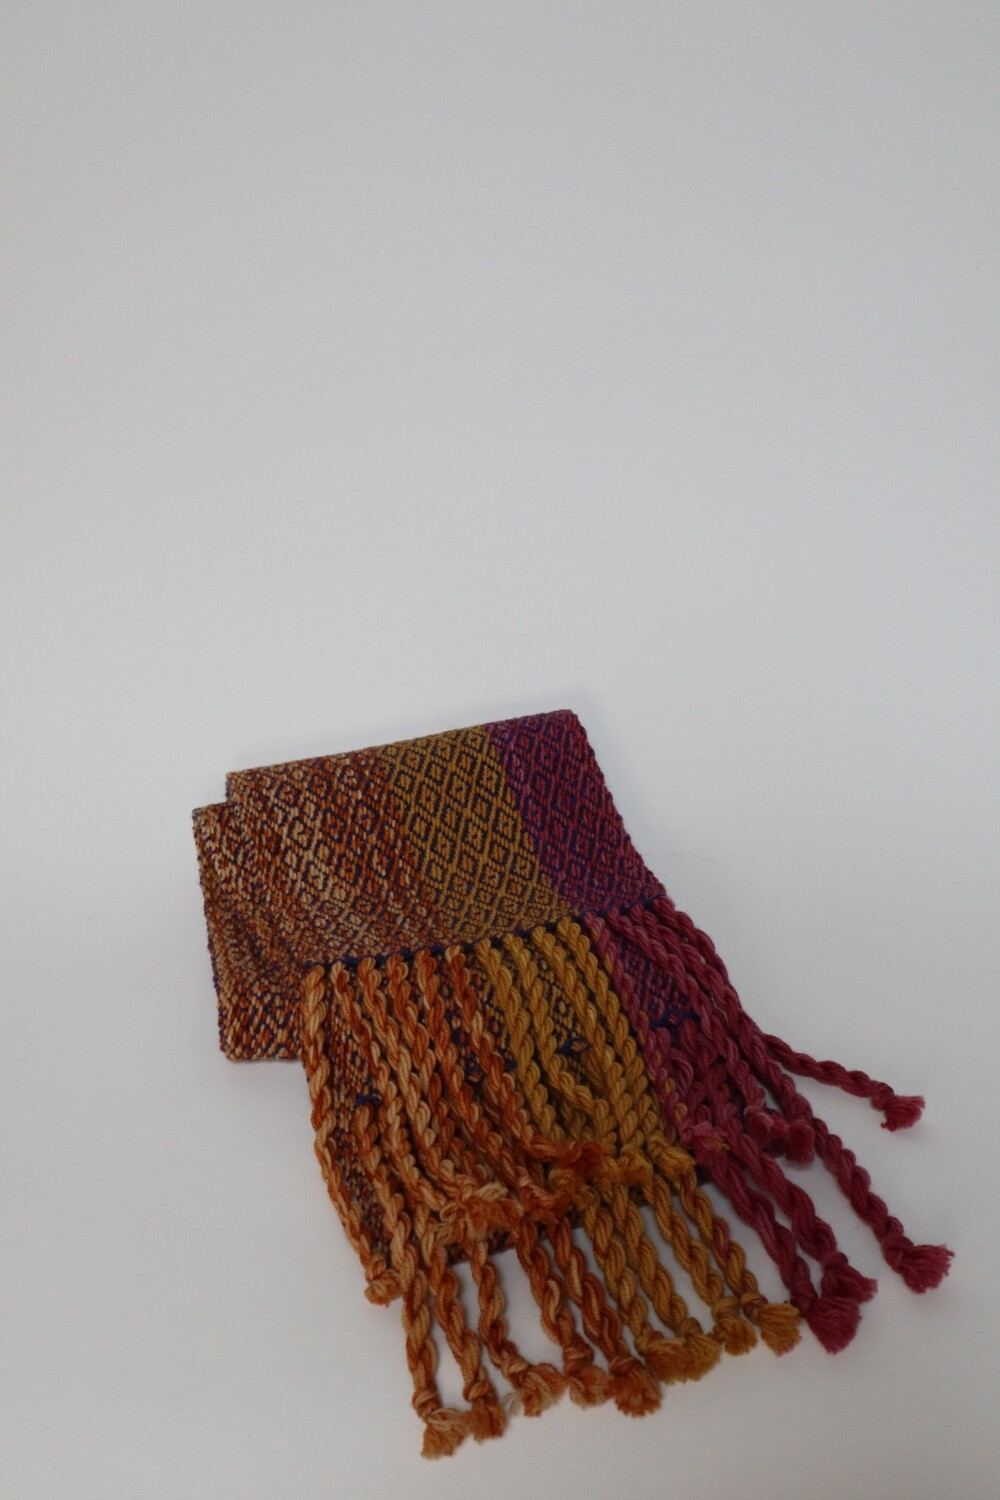 Osage orange and cochineal dyed scarf